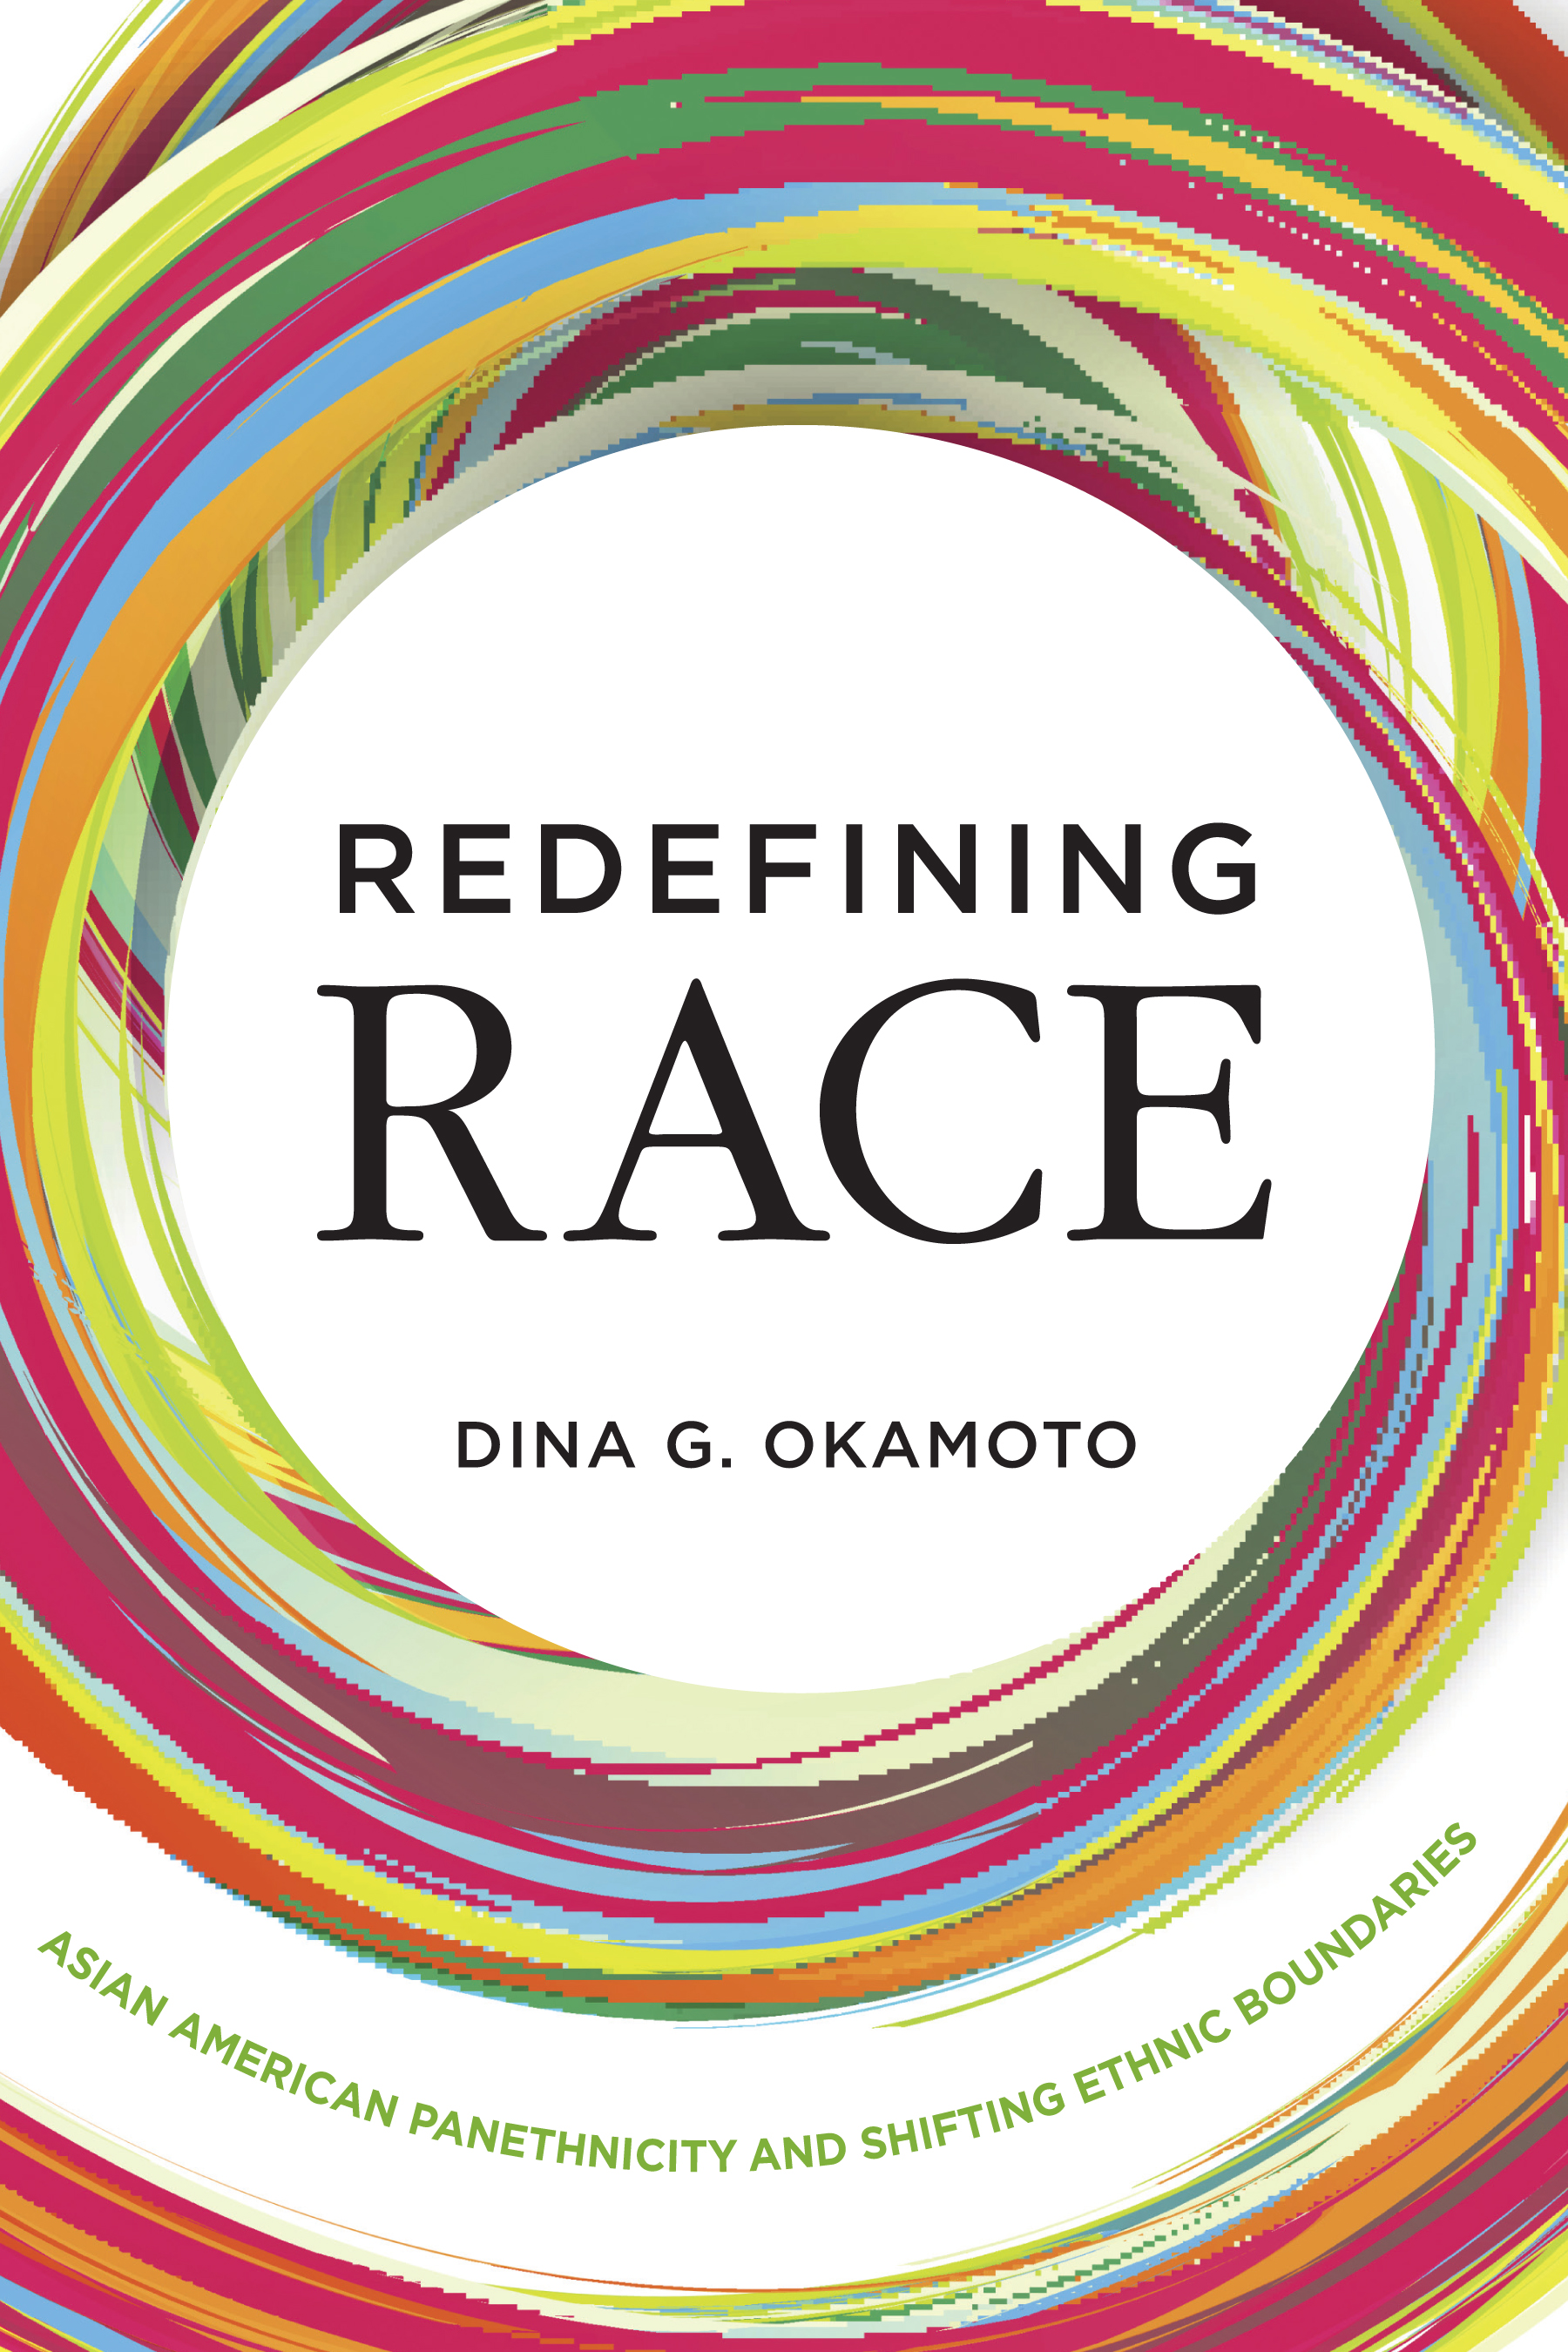 Image of the cover of the book Redefining Race: Asian America Panethnicity and Shifting Ethnic Boundaries written by Dina Okamoto.